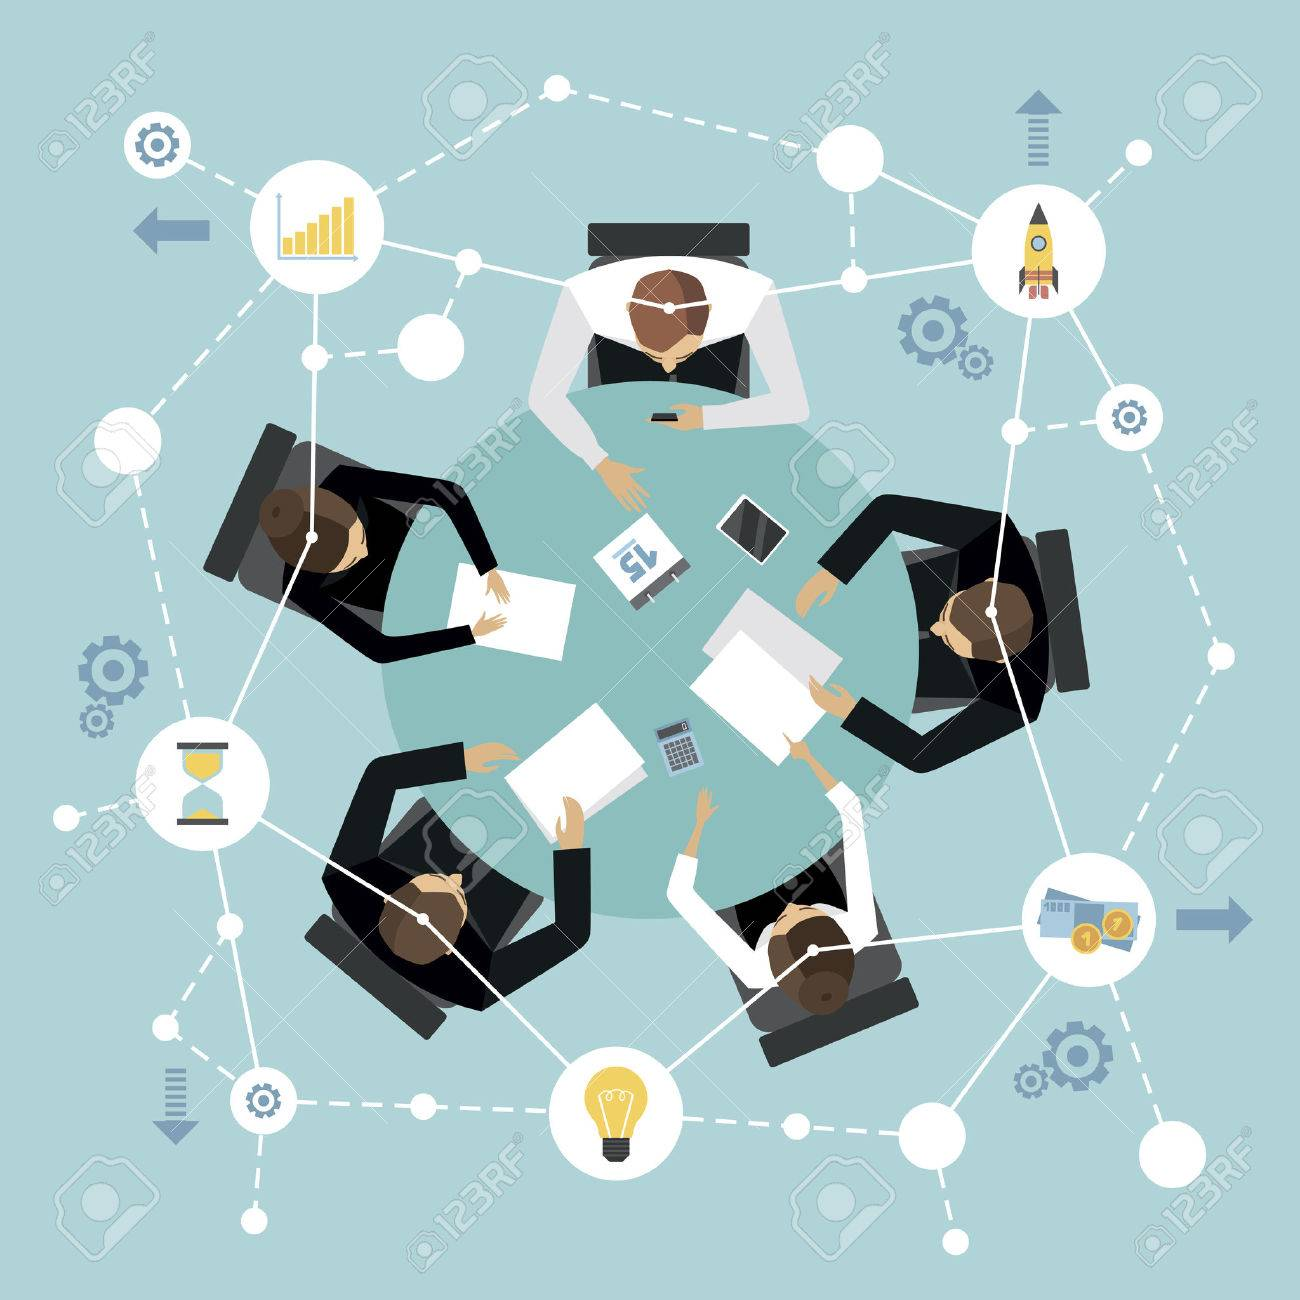 Round table meeting icon - Business Management Meeting And Brainstorming Concept With People On The Round Table In Top View Vector